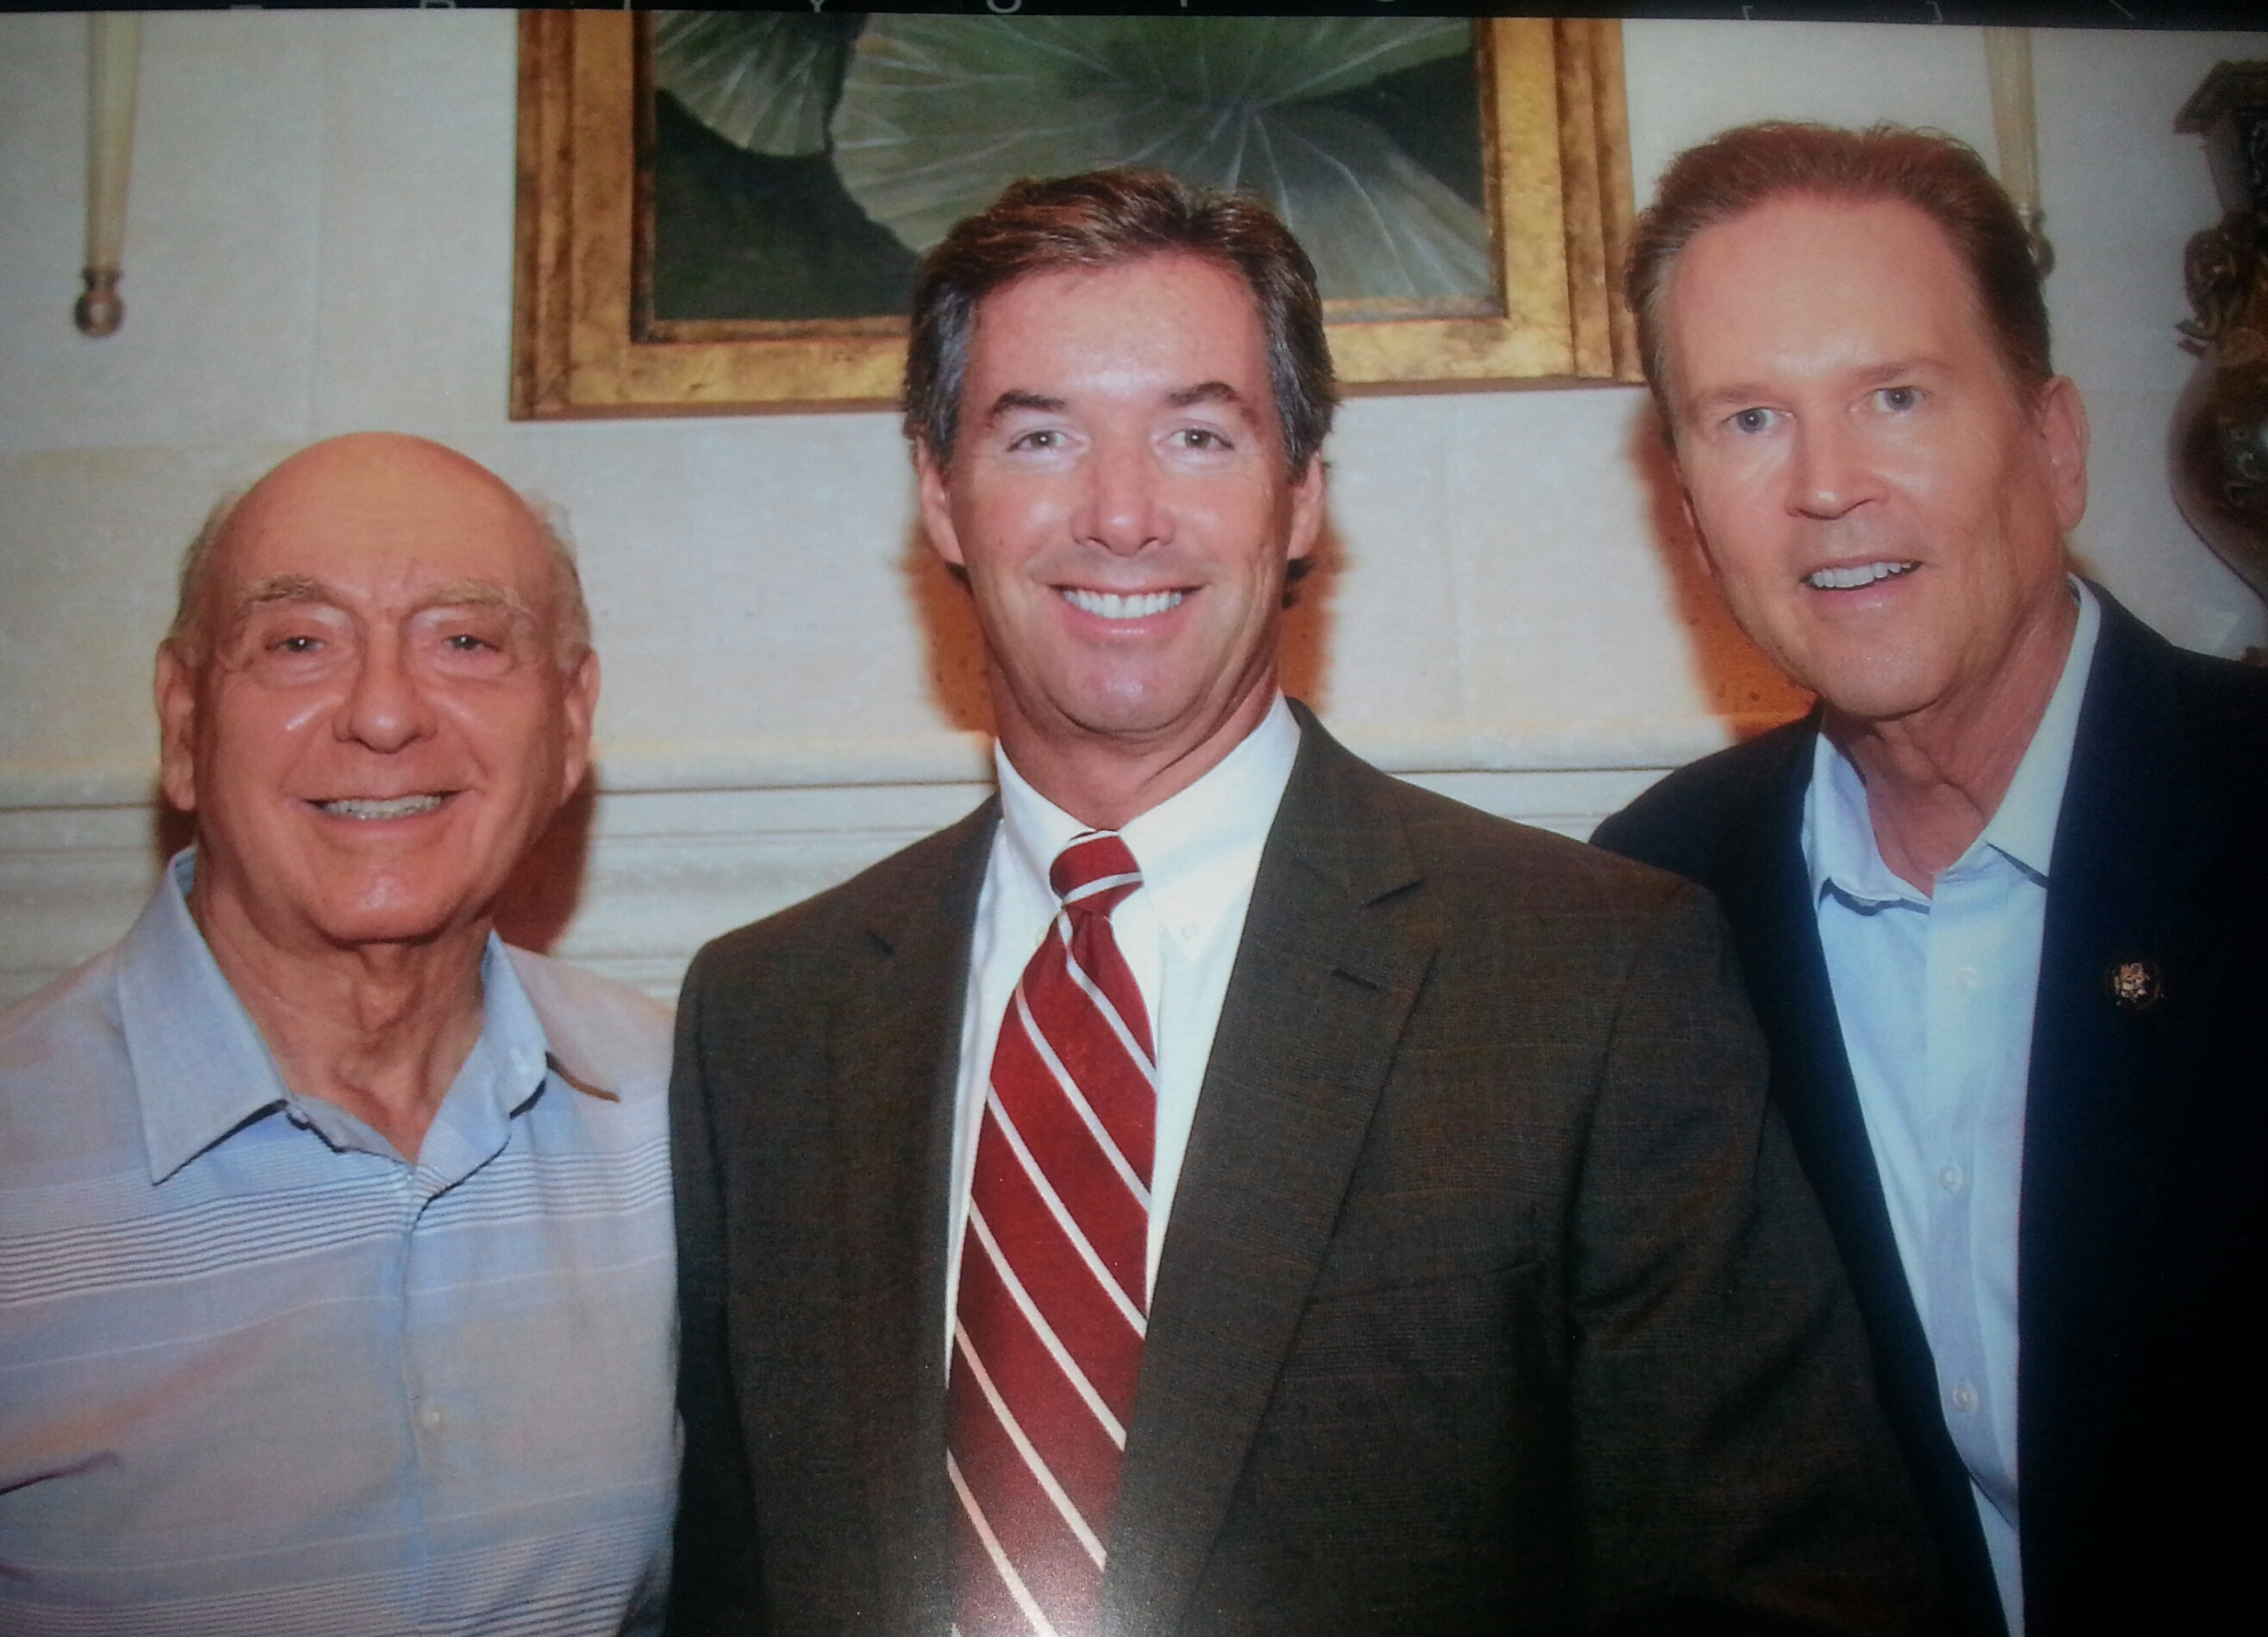 Dick Vitale, Ray Collins & U.S. Rep. Vern Buchanan (R-FL).